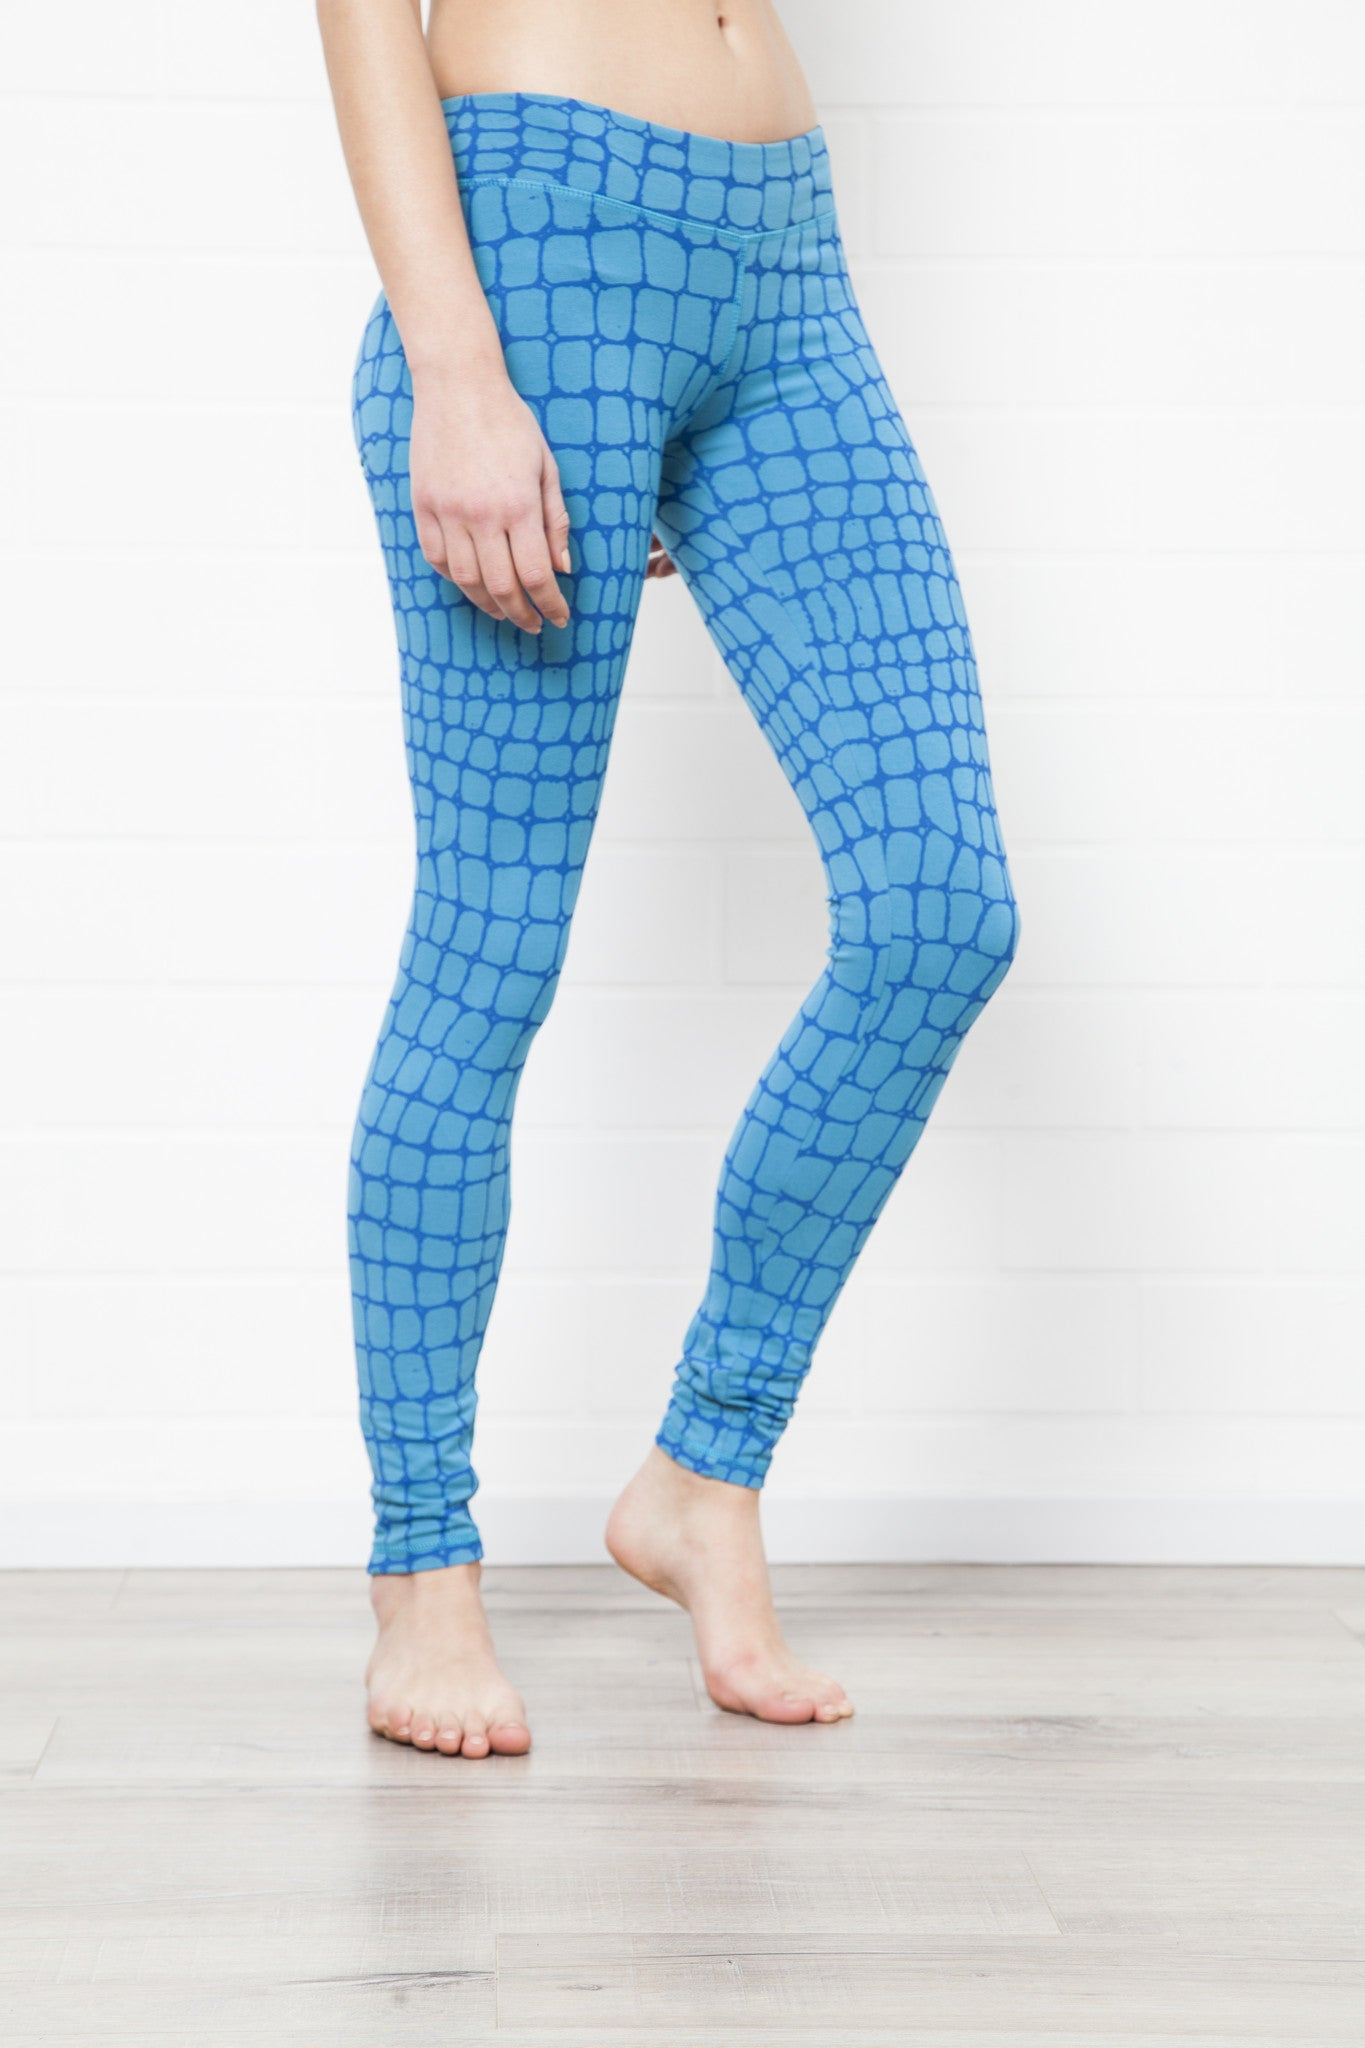 Crocodile Turquoise Leggings Tight - FUNKY SIMPLICITY